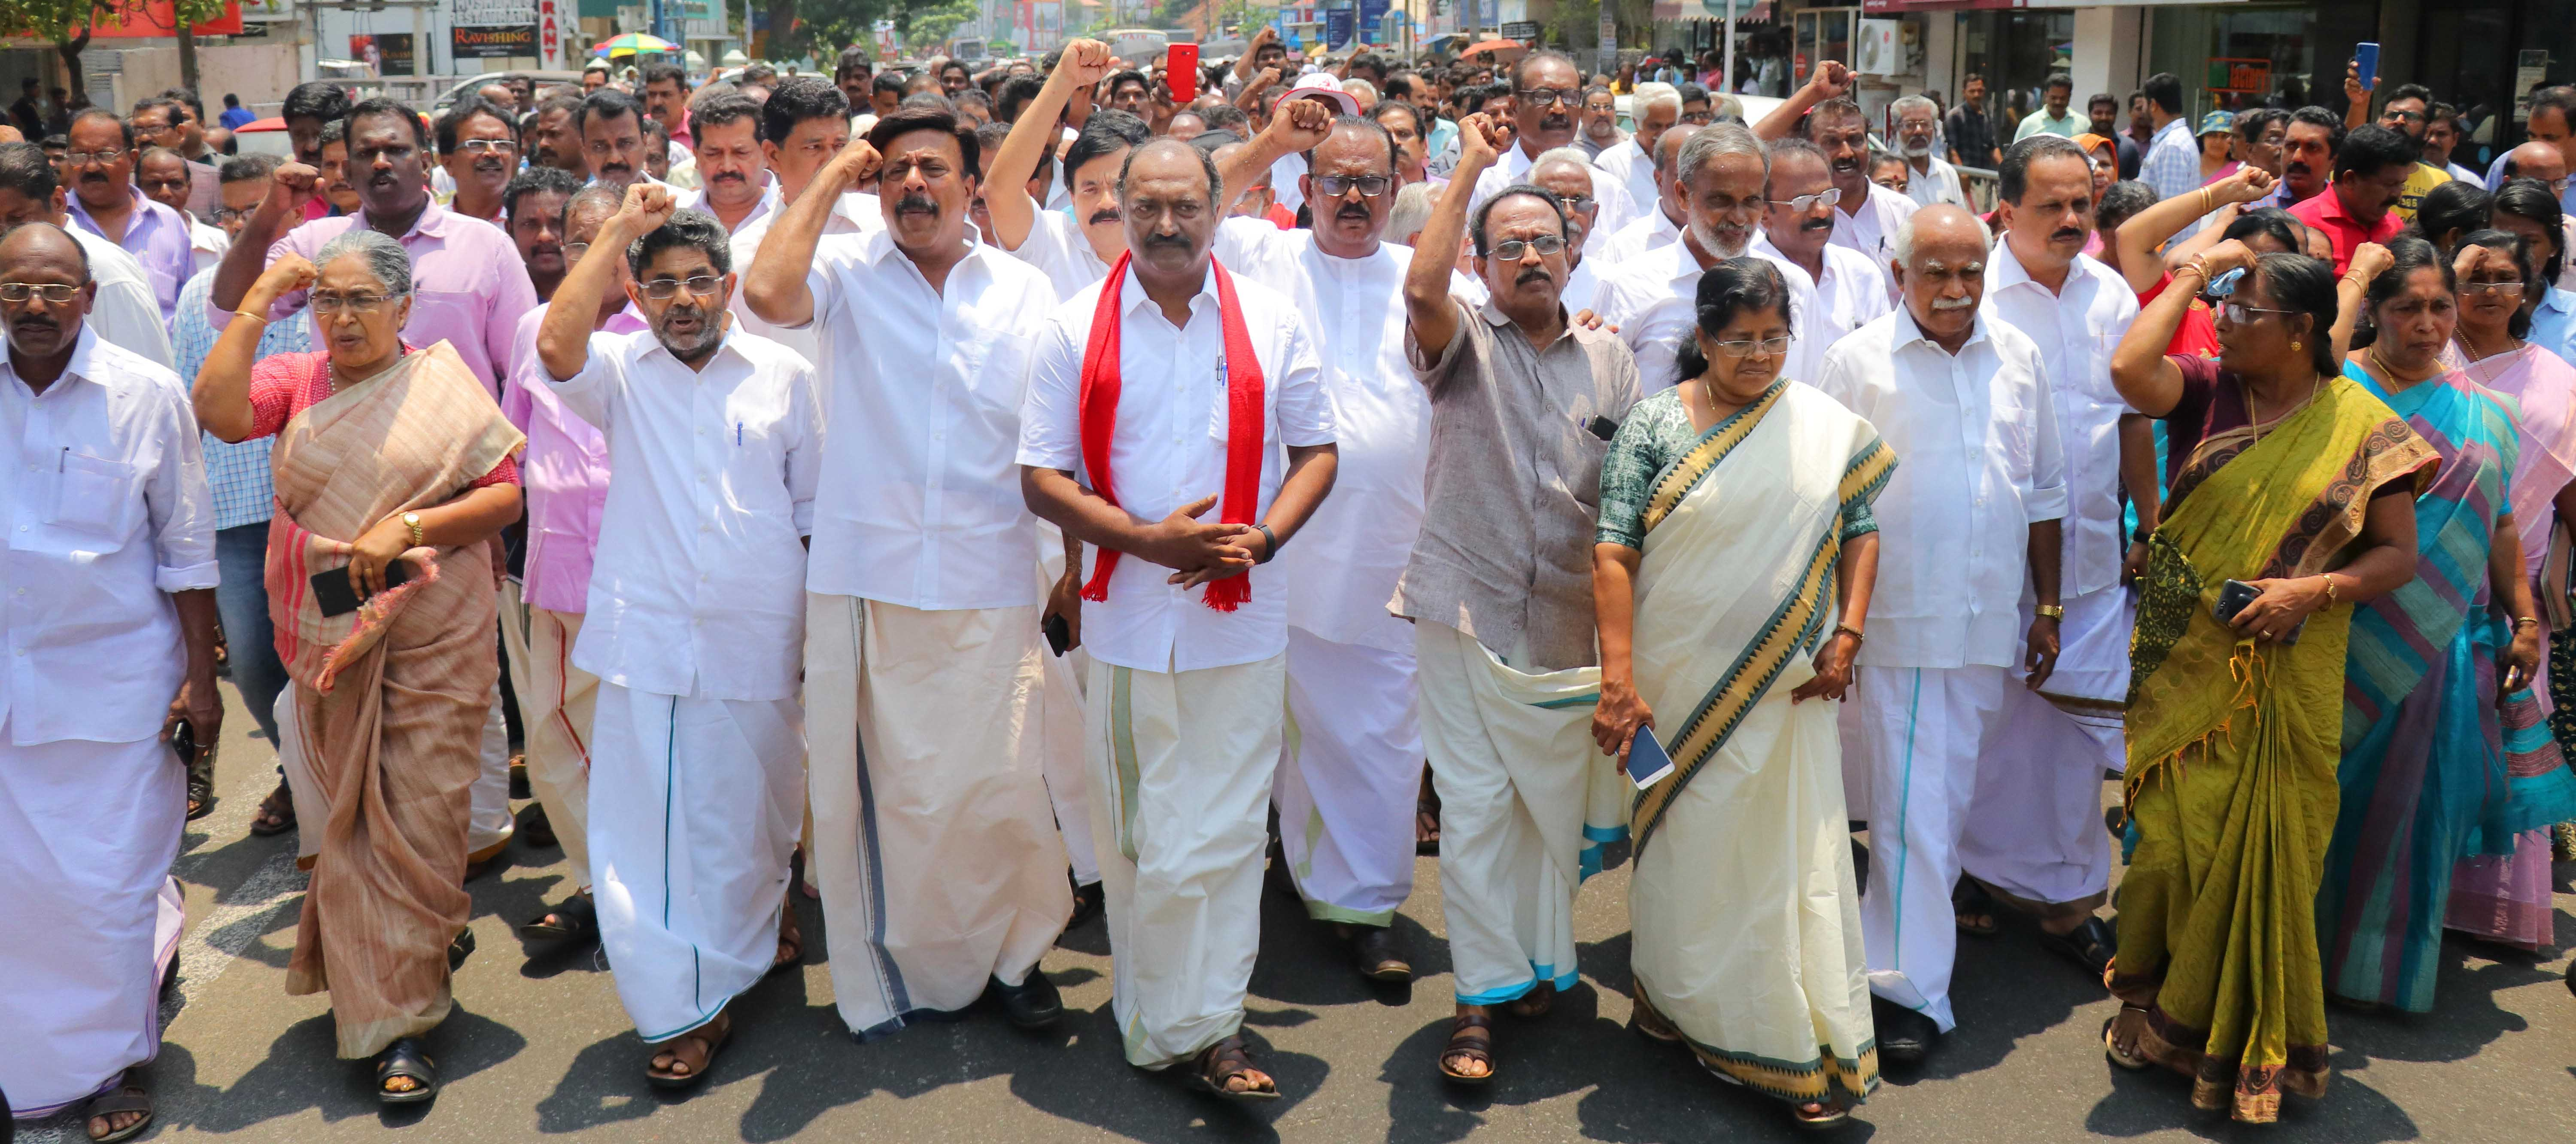 KN Balagopal , Left Democratic Front (LDF) candidate in Kollam Lok Sabha constituency in election campain. (Photo by Binesh Kumar/GroundTruth)